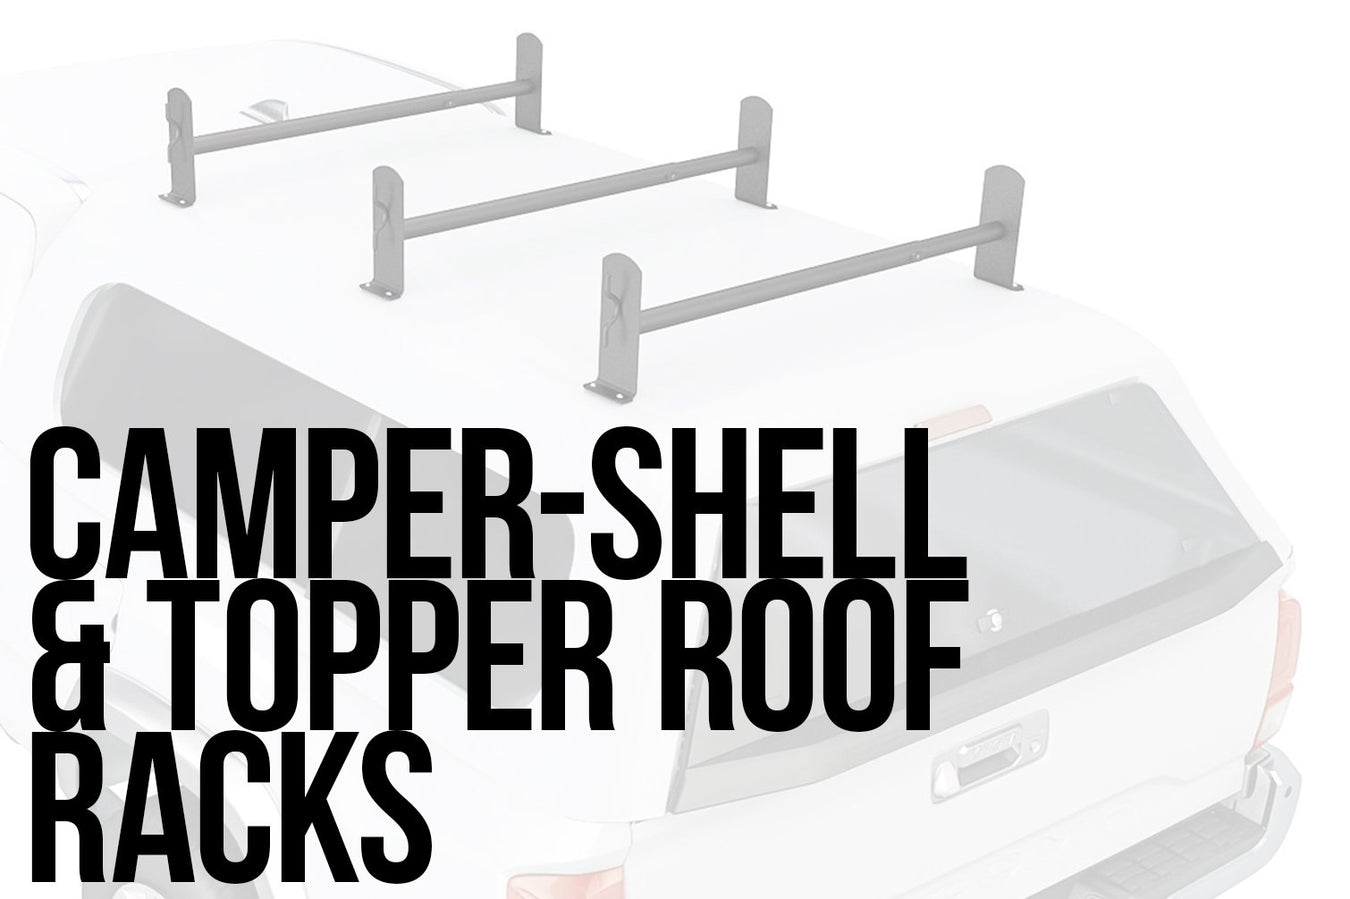 Camper-shell and Topper roof racks